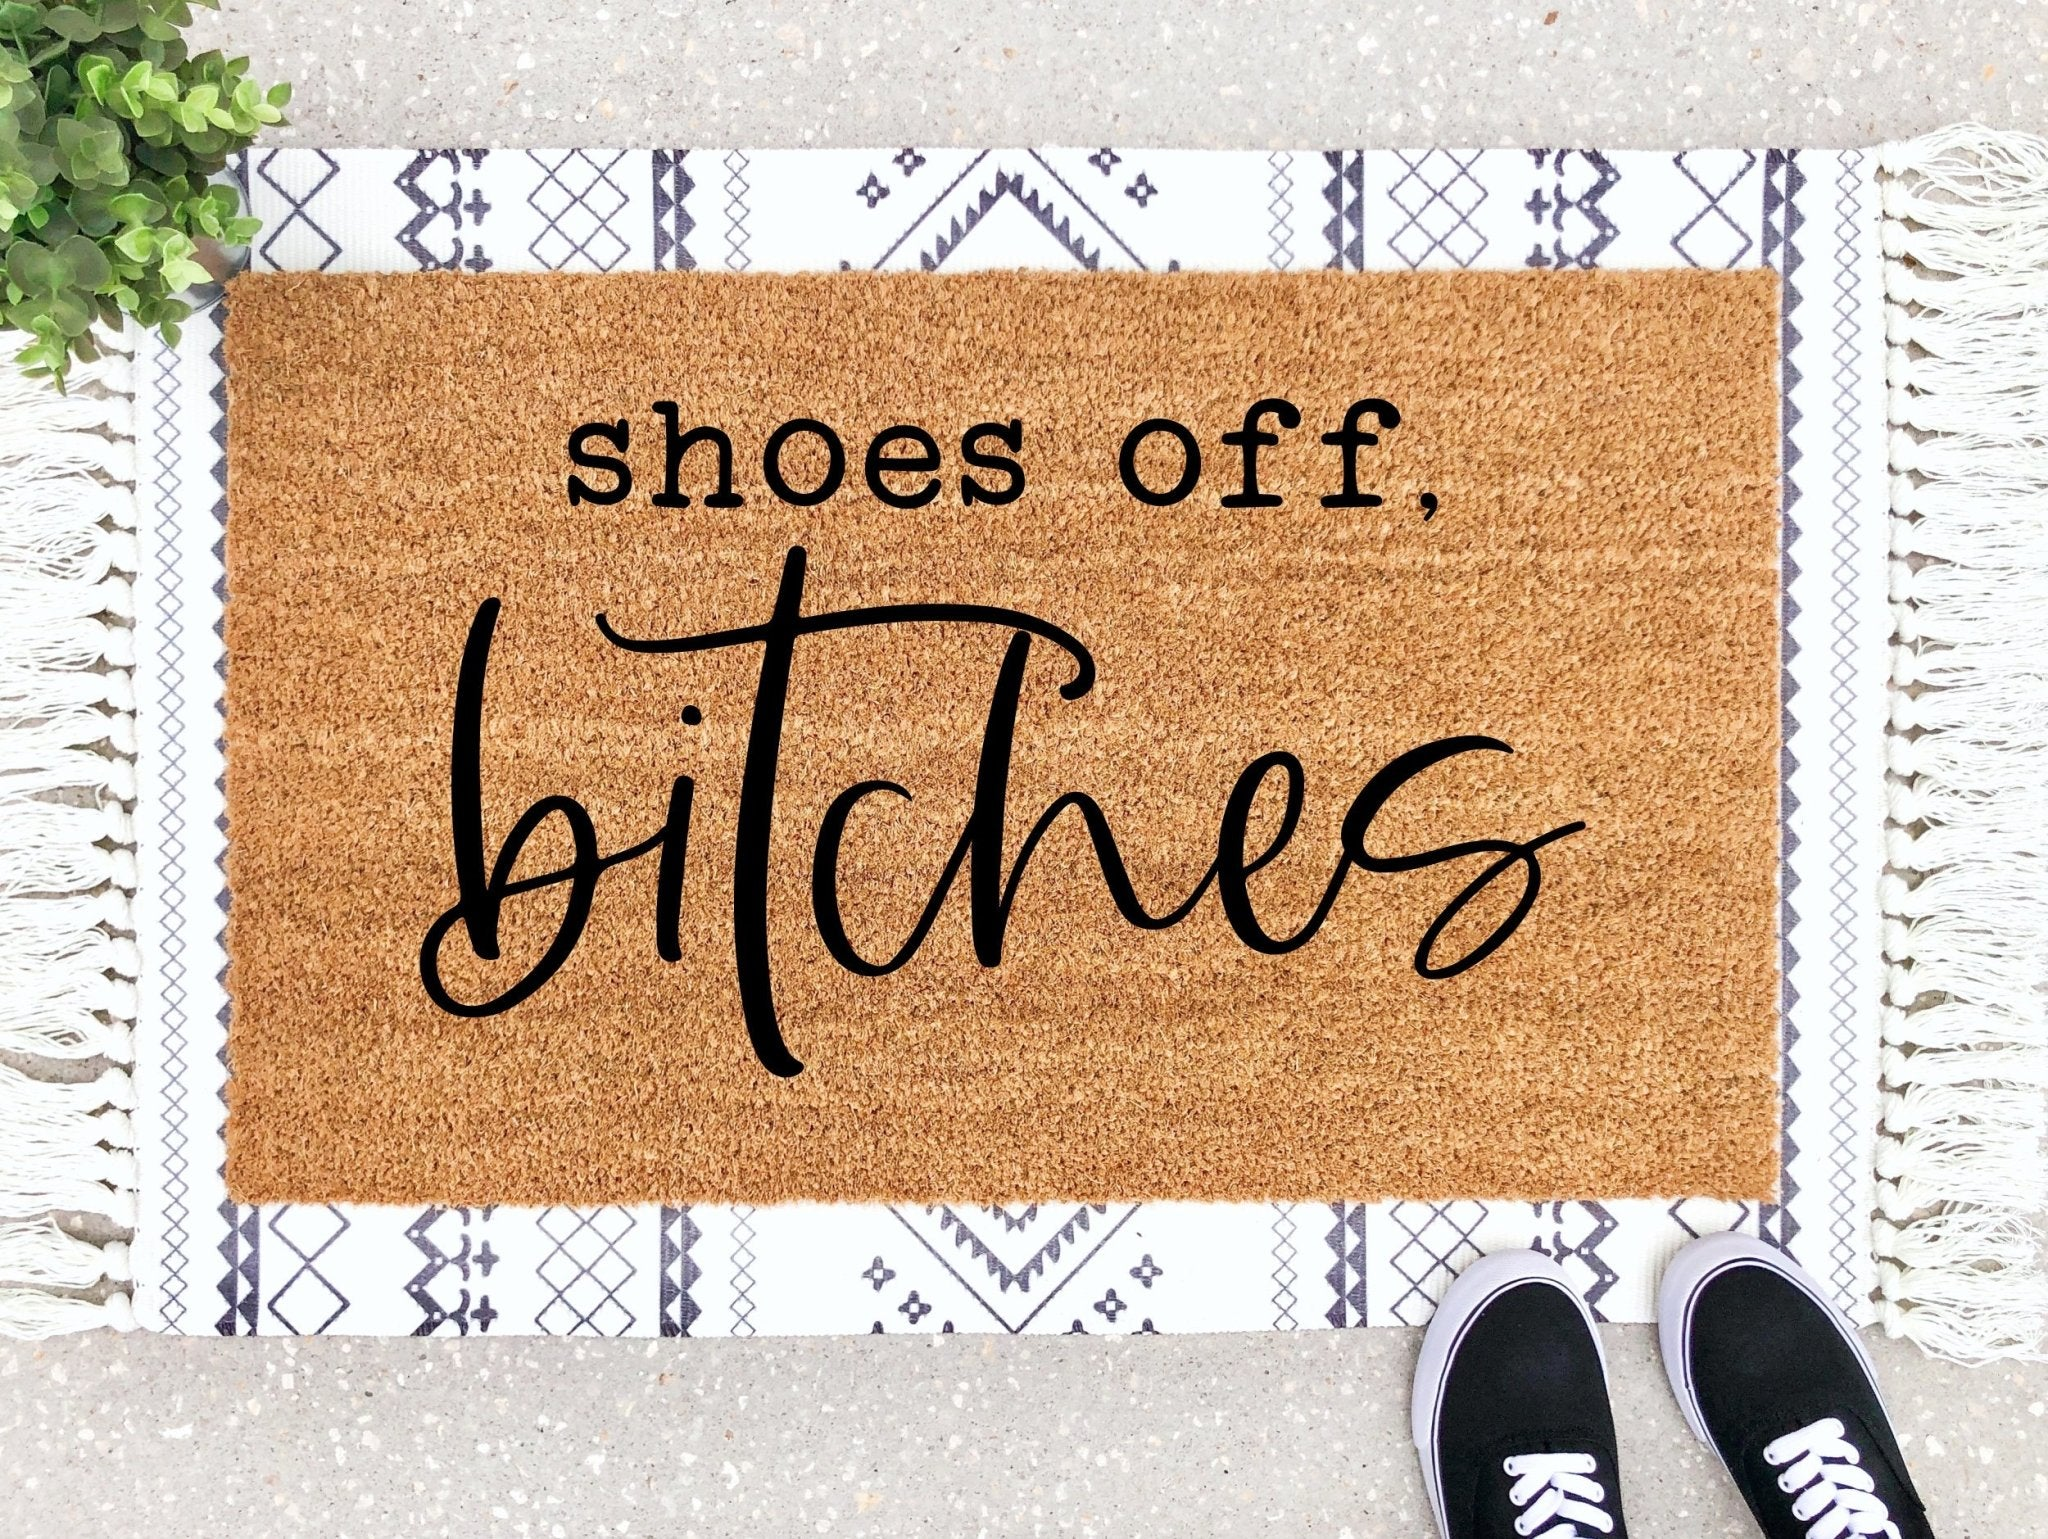 Shoes Off Bitches Doormat